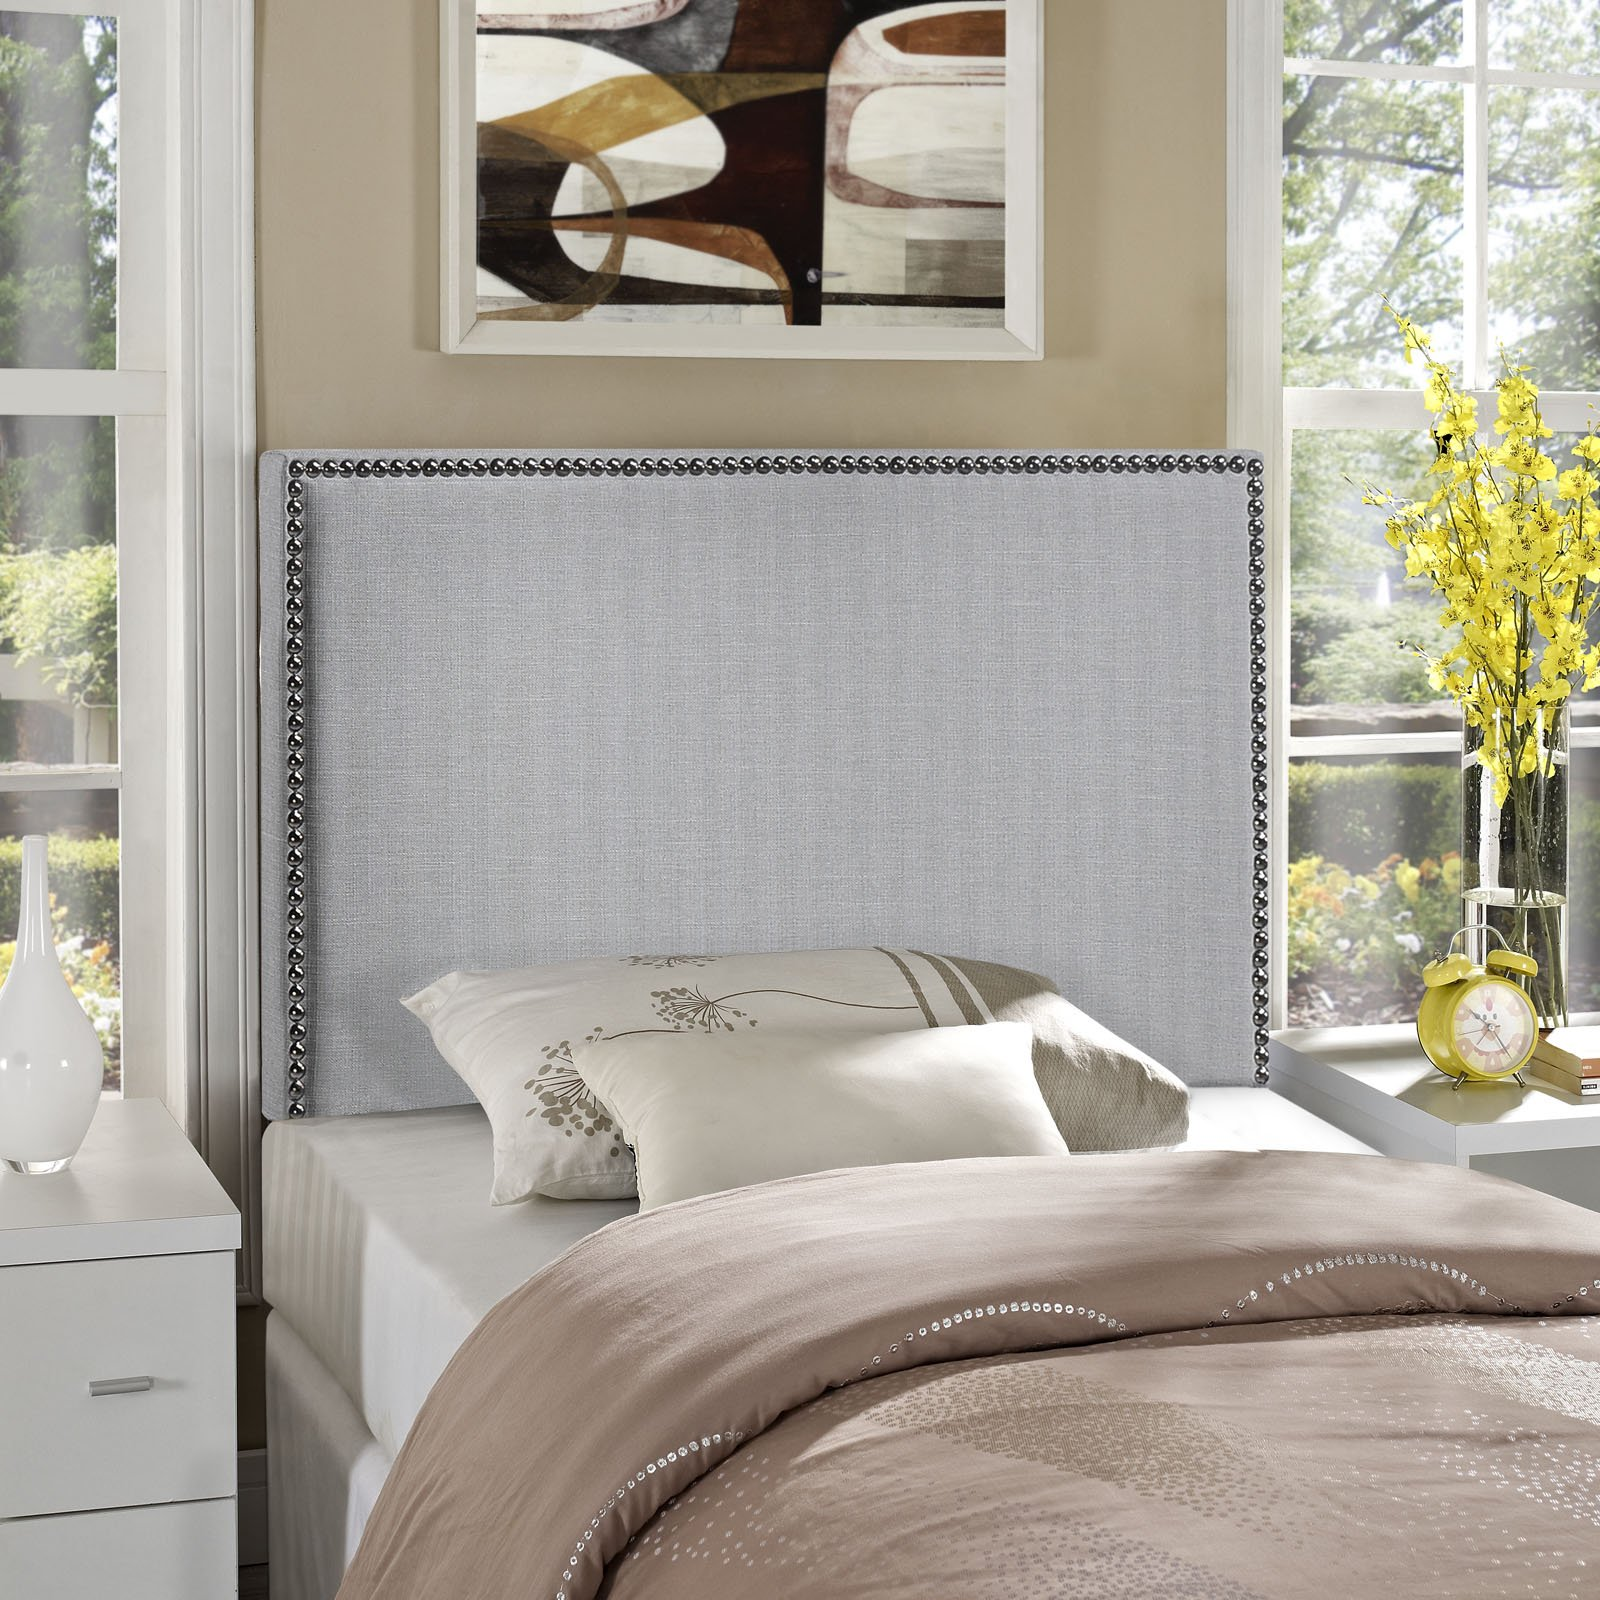 Modway Region Linen Fabric Upholstered Twin Headboard in Gray with Nailhead Trim by Modway